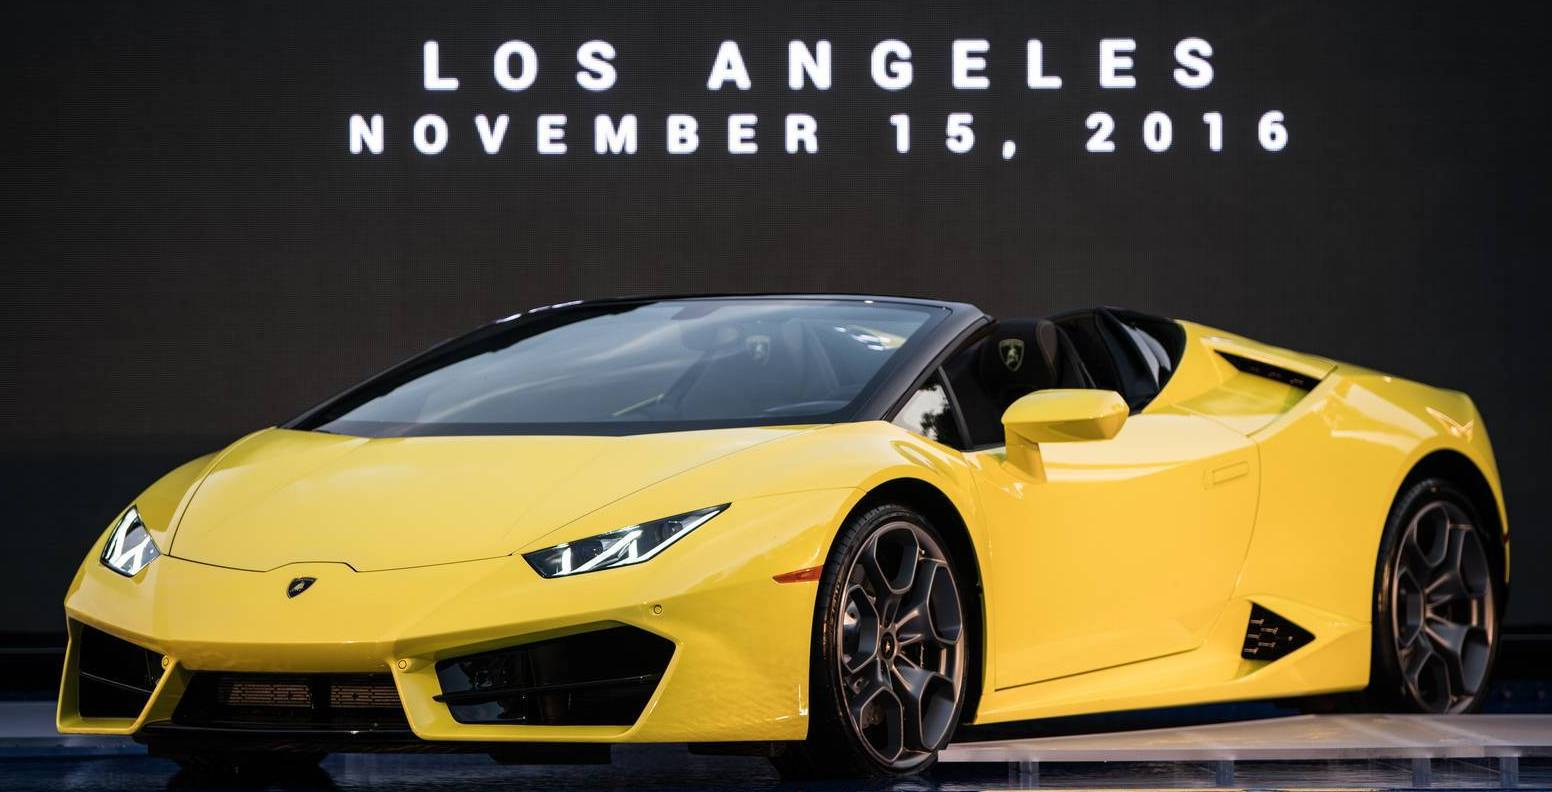 Lamborghini Huracan Spyder Rwd With A Price Tag Of Rs 3 45 Cr